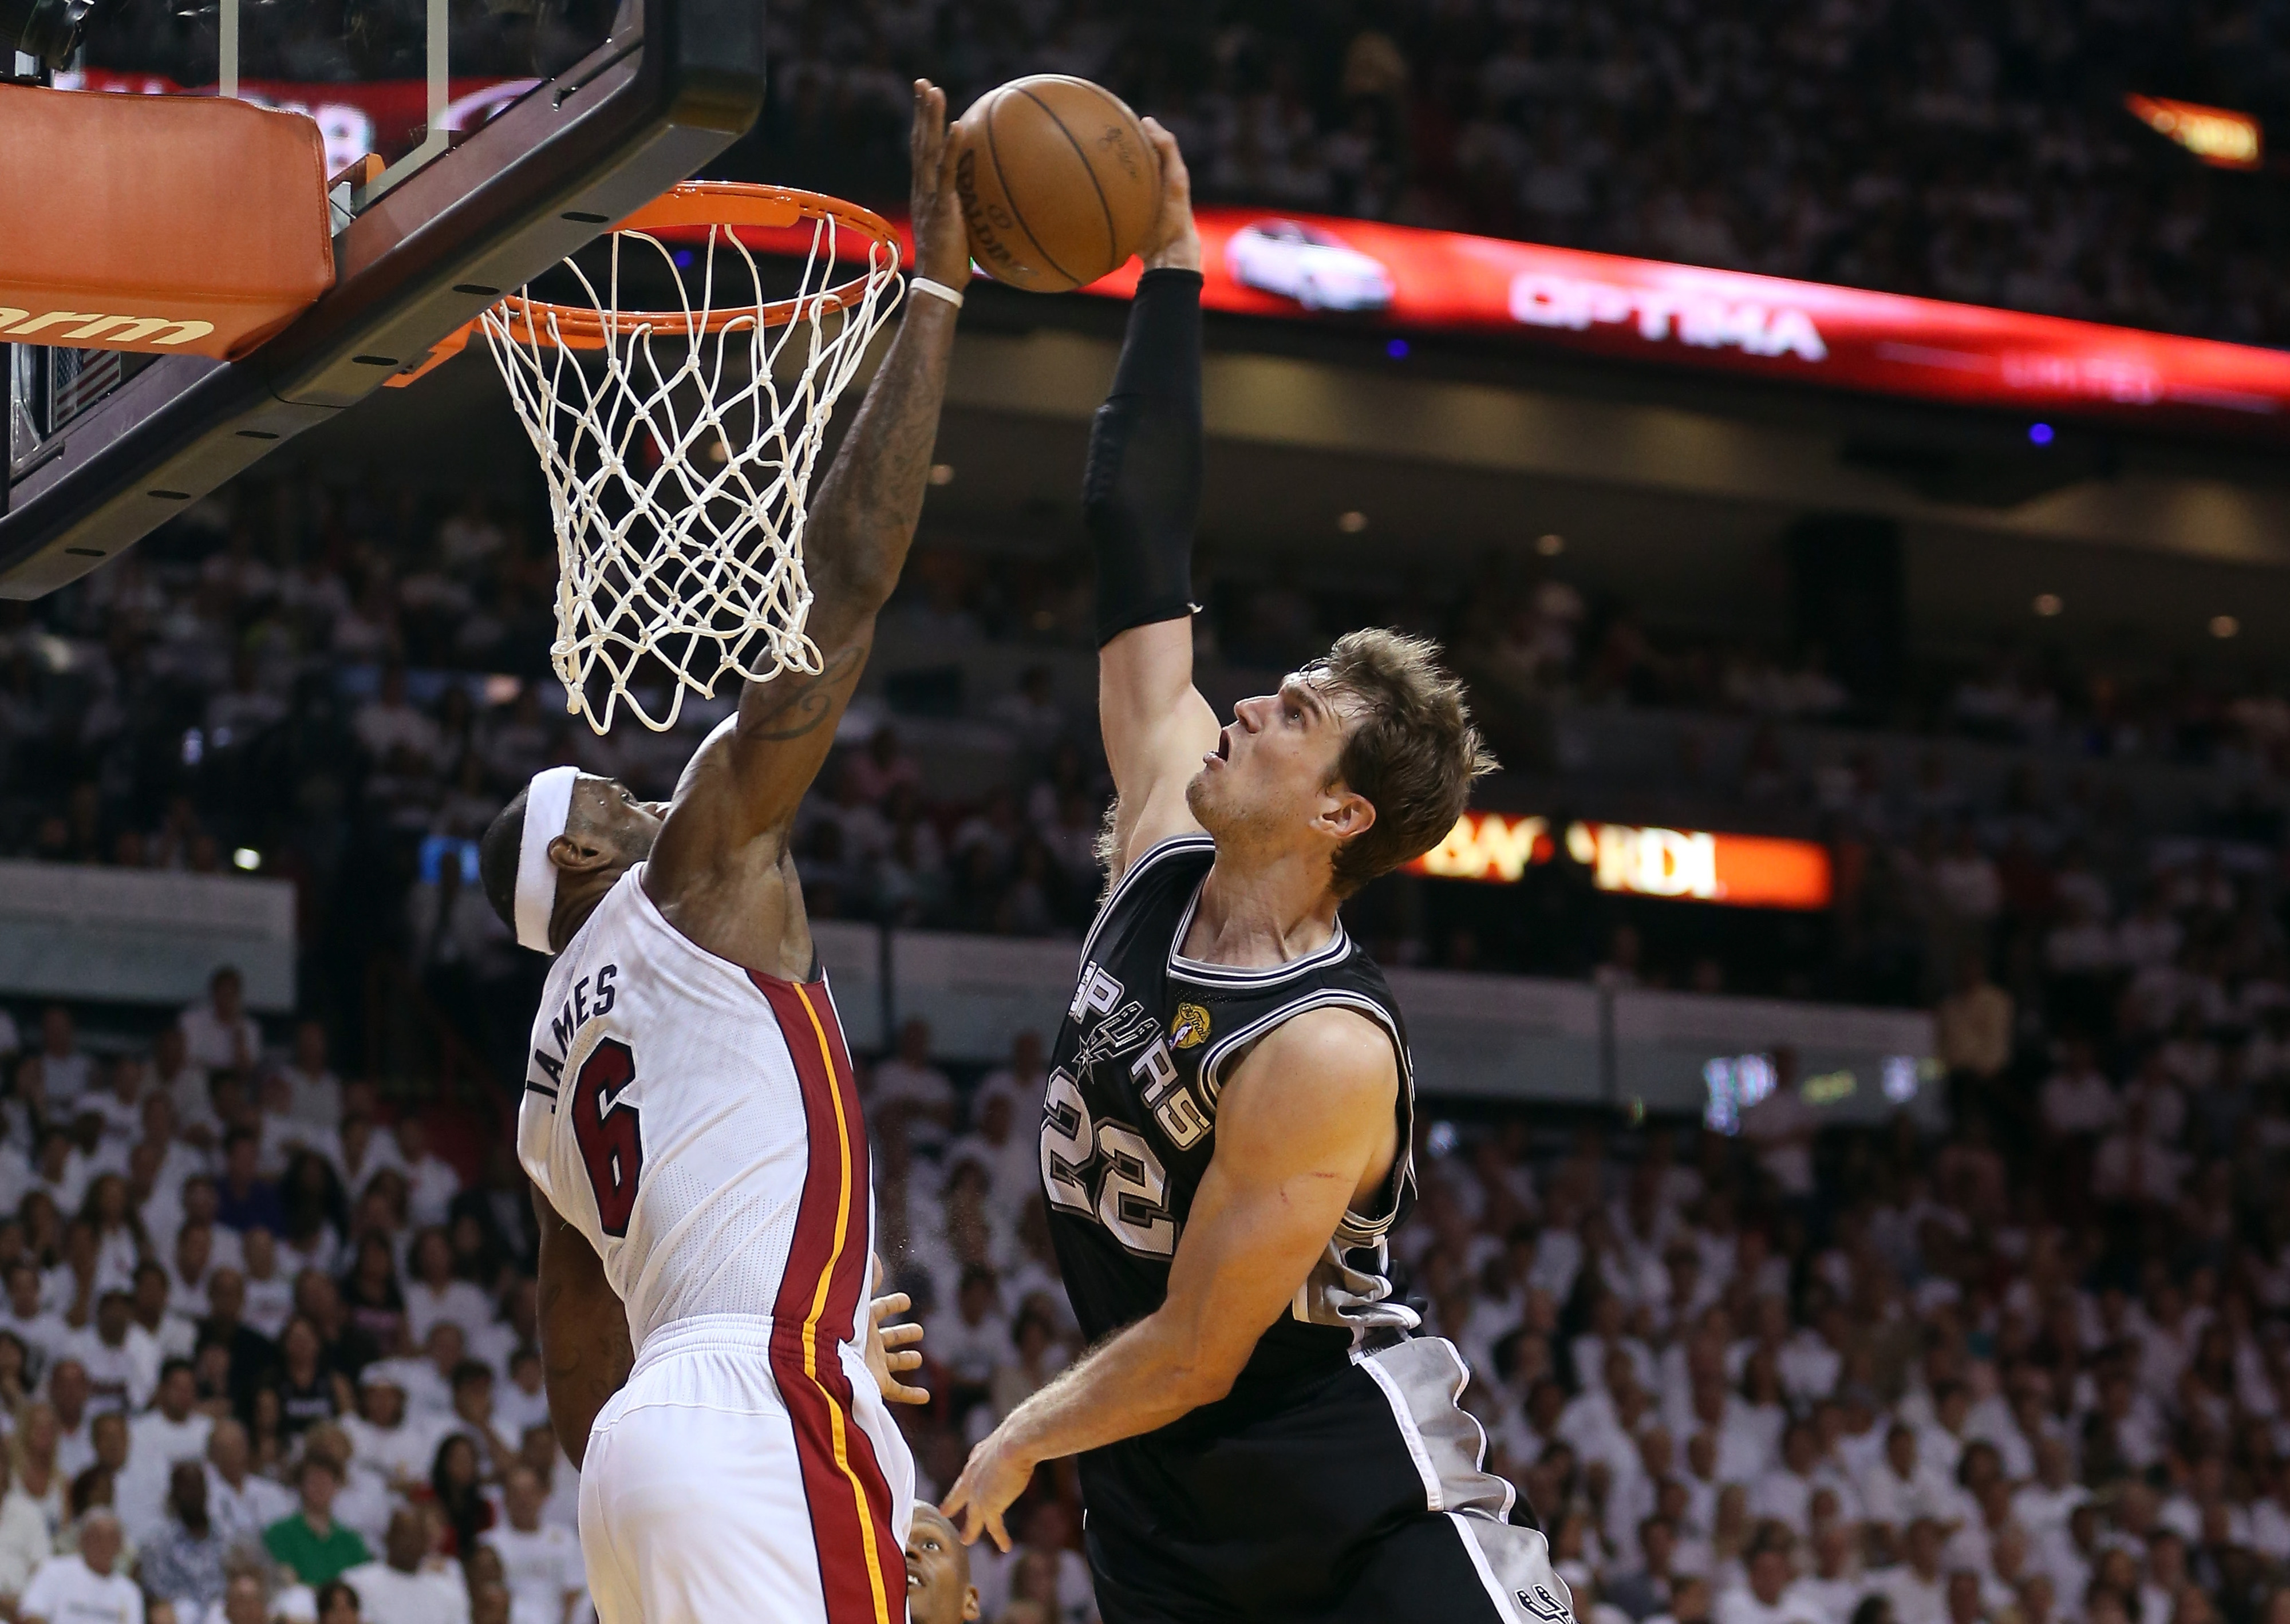 LeBron's block on Tiago Splitter slowed, scored, and exploded